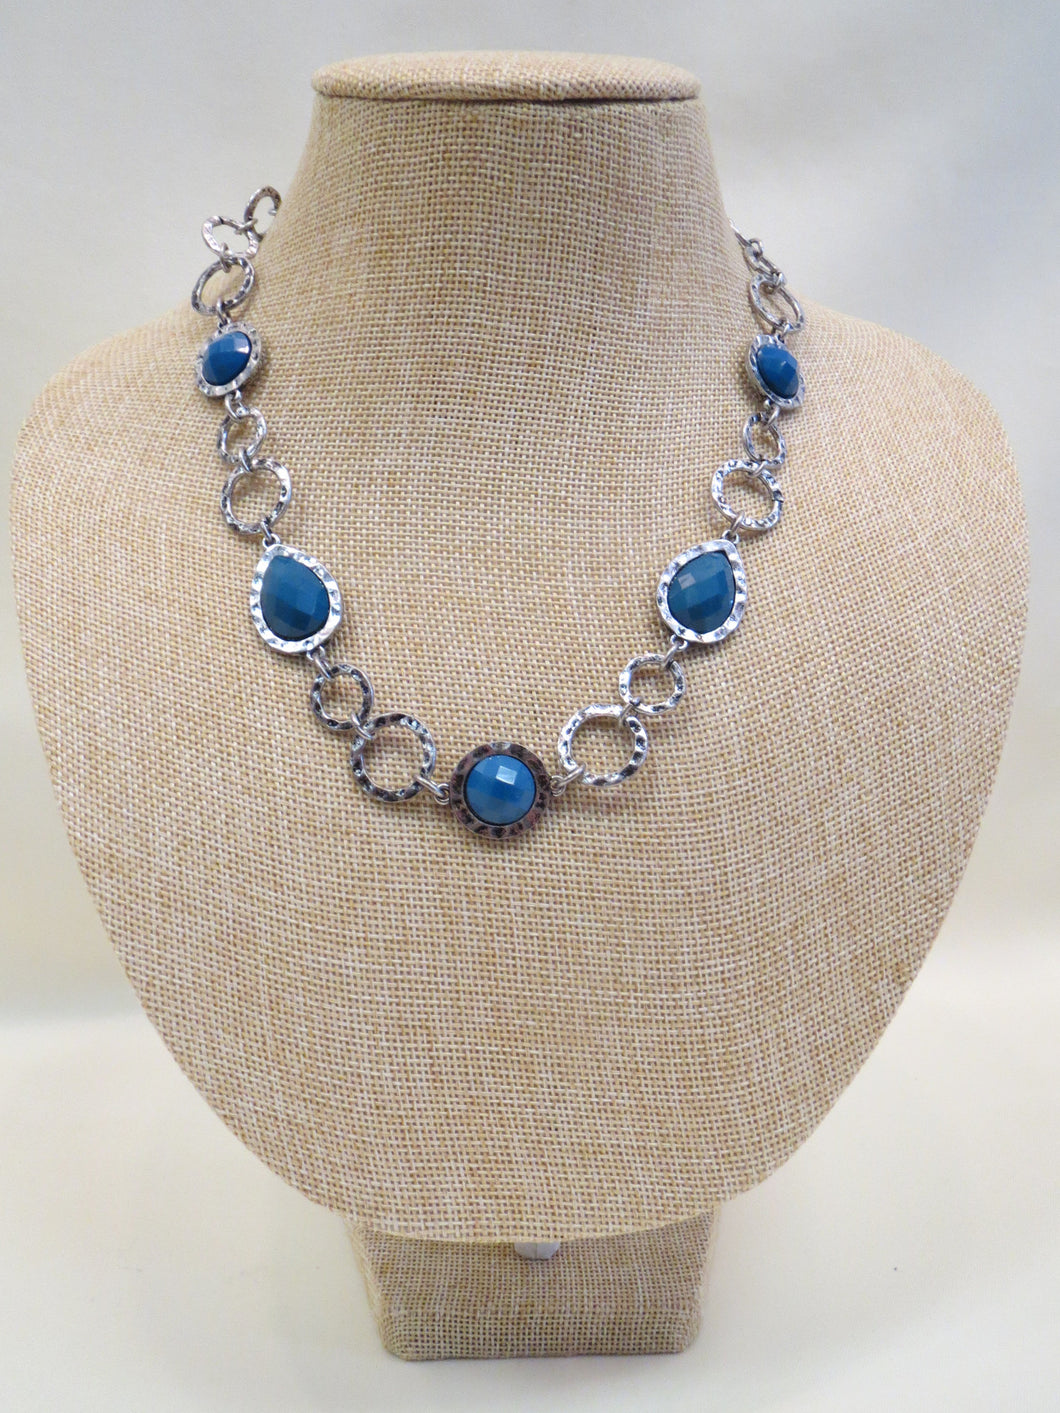 ADO Silver Chain Blue Stone Necklace | All Dec'd Out